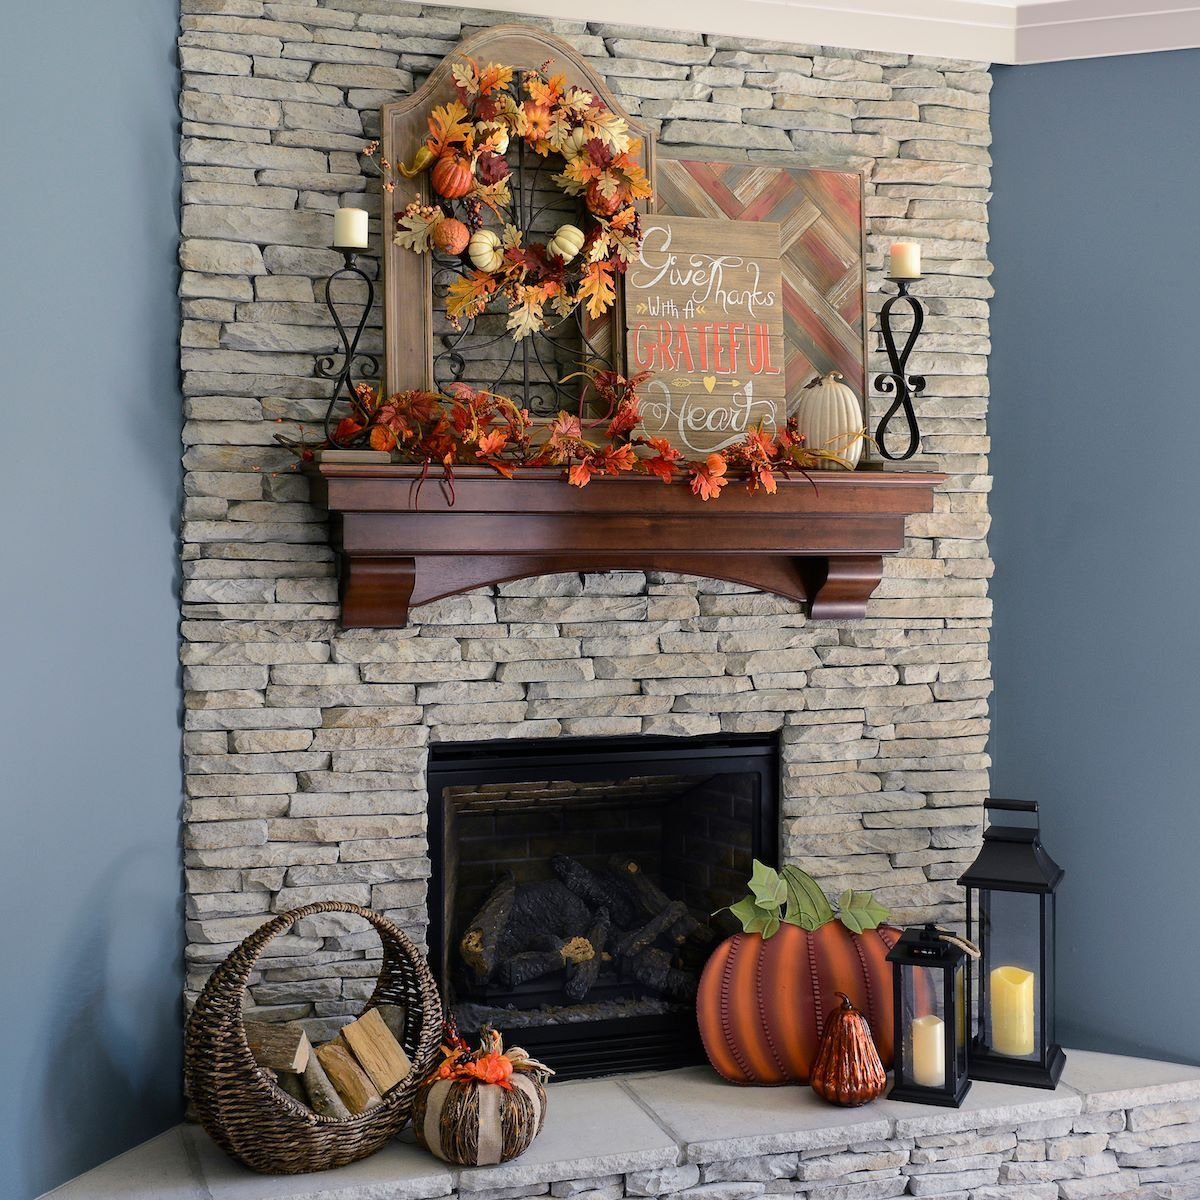 Fall Fireplace Mantel Decorating Ideas: Fall Mantel Decor Idea - Pumpkins And Fall Leaves.